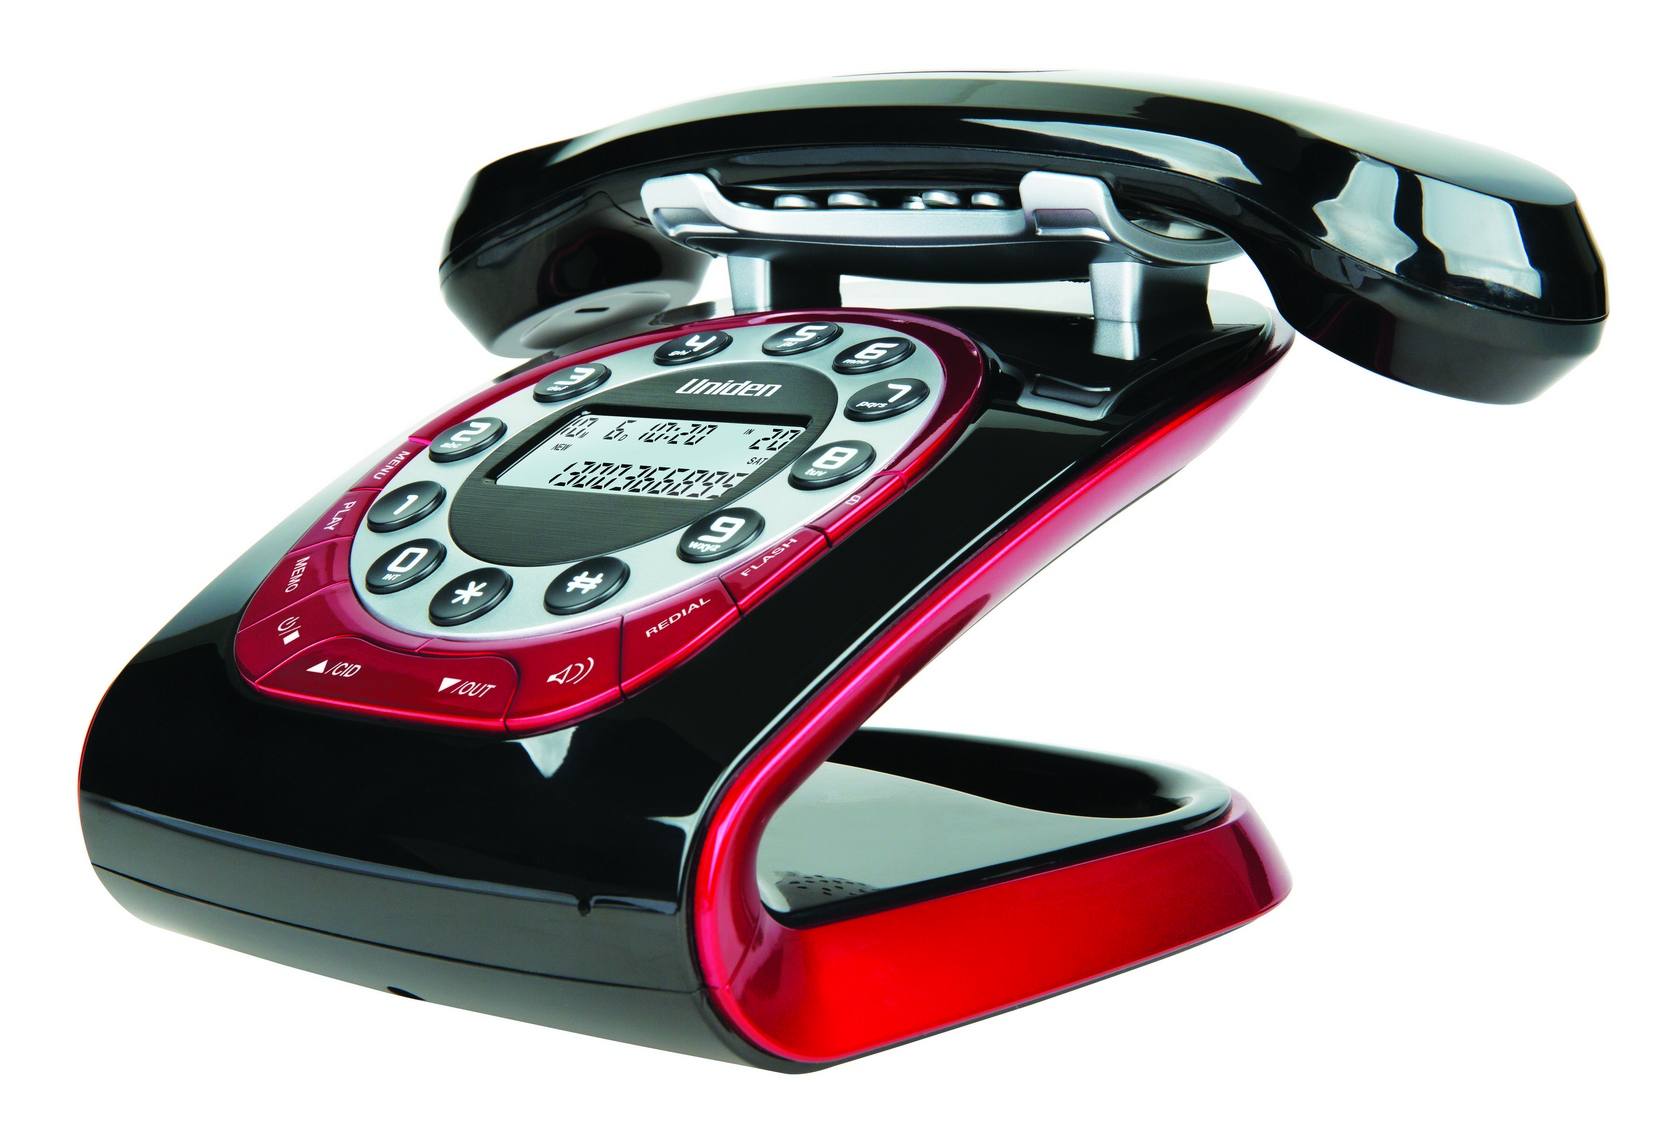 UNIDEN MODRO 35 BLACK RETRO STYLE CORDLESS PHONE FREE SHIPPING